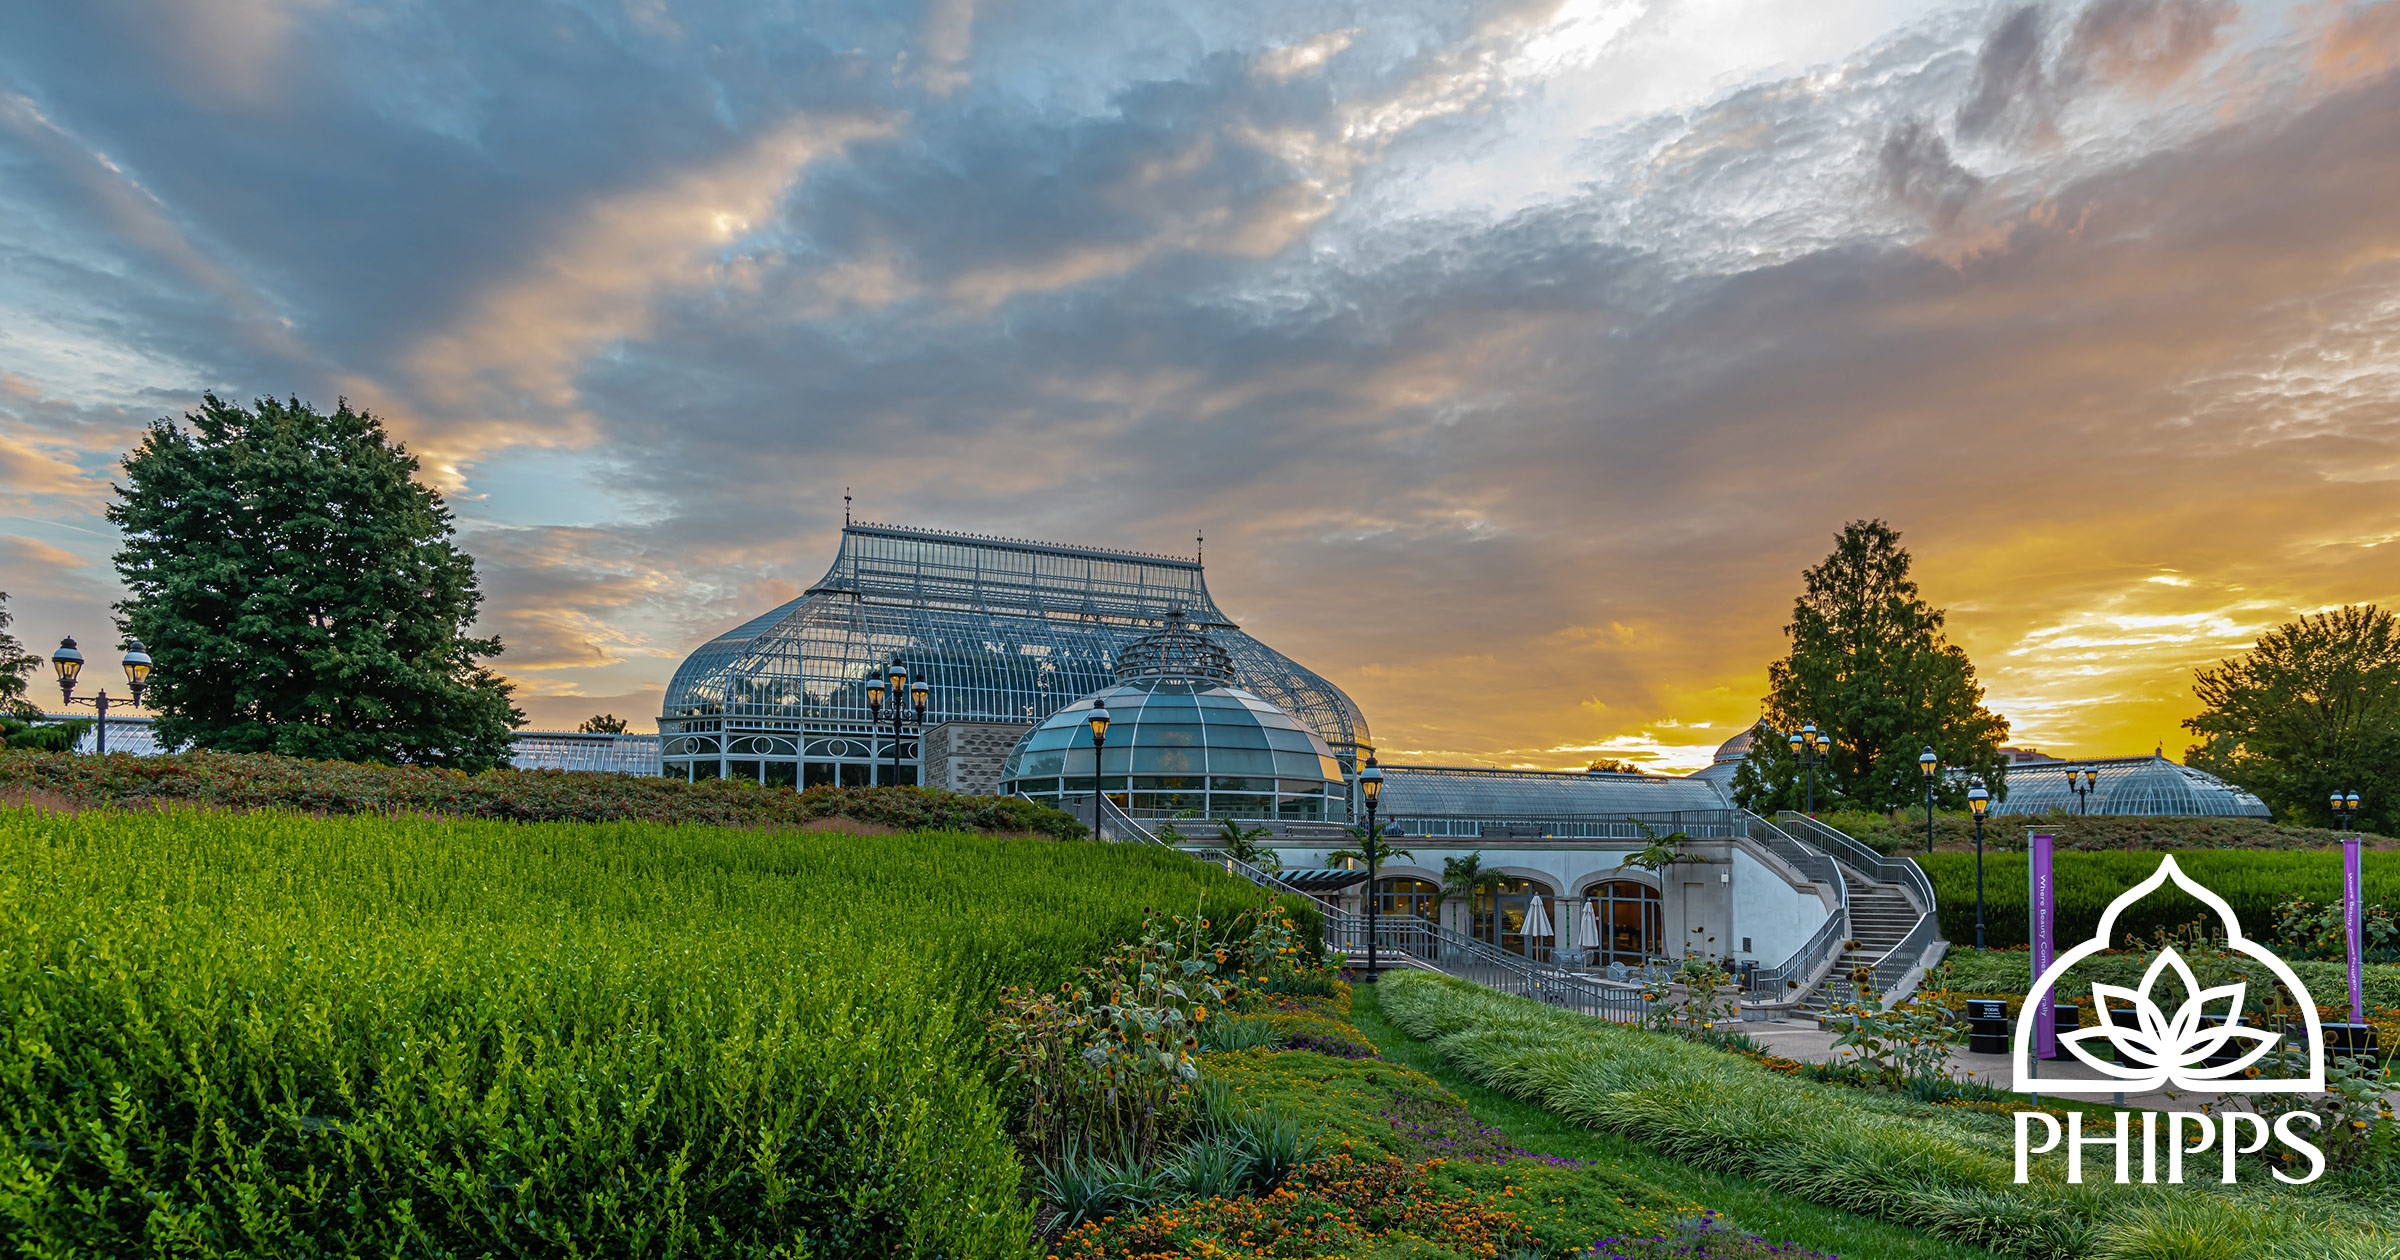 Phipps Conservatory Announces Extended Hours for Summer Flower Show: Back in Bloom